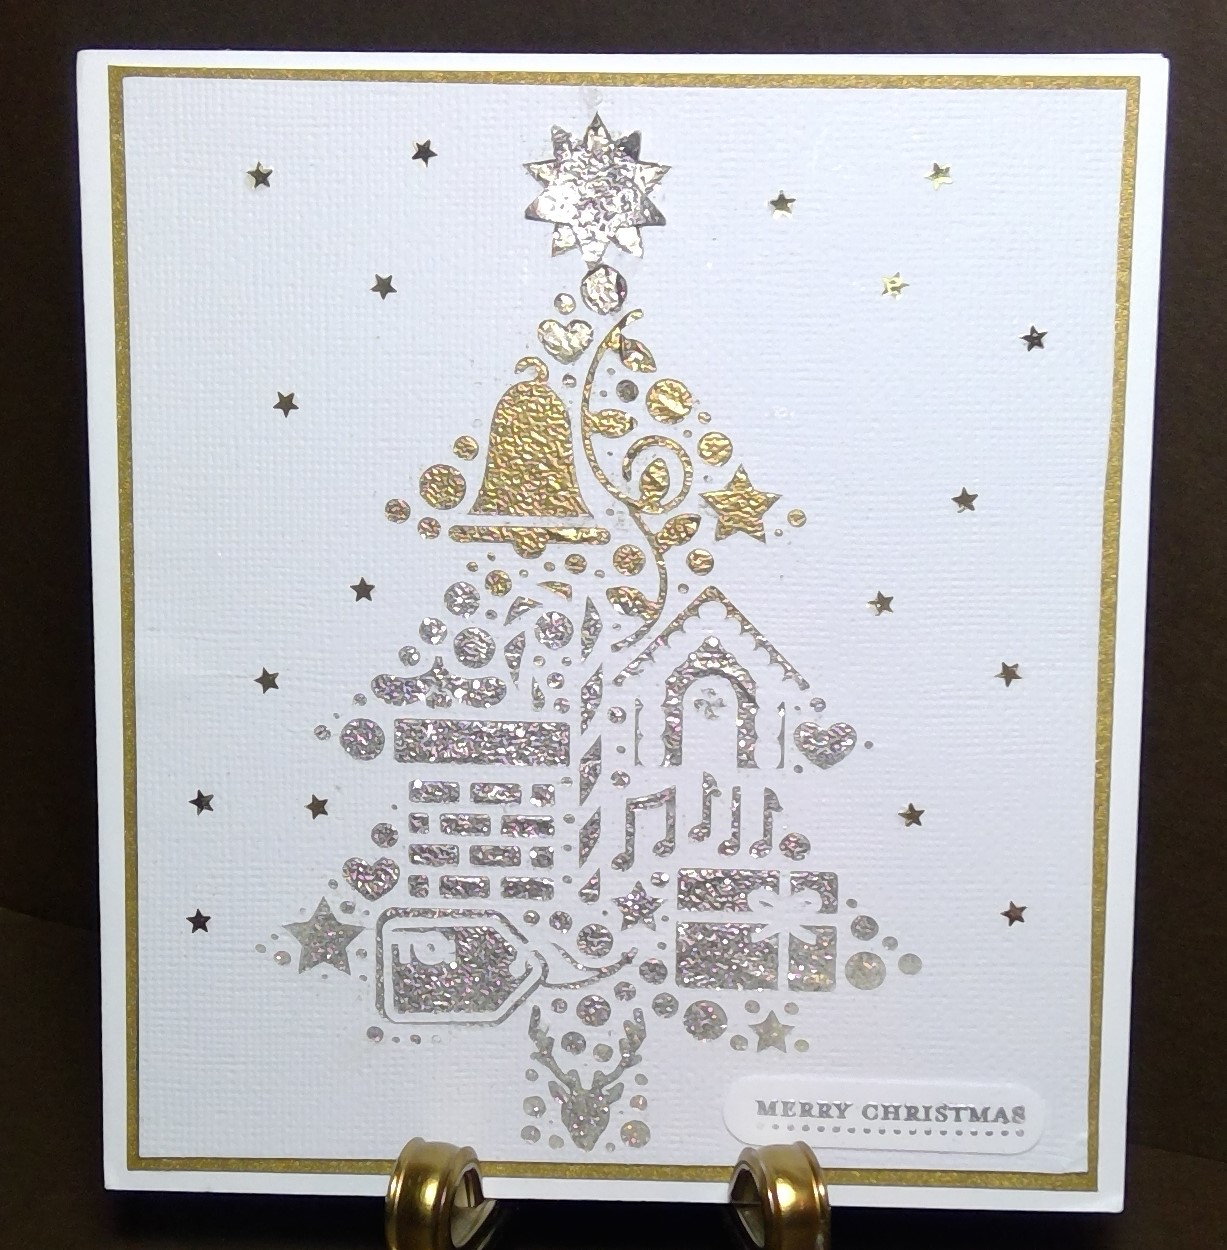 Cotswold Crafter: My Christmas Card From Lilian